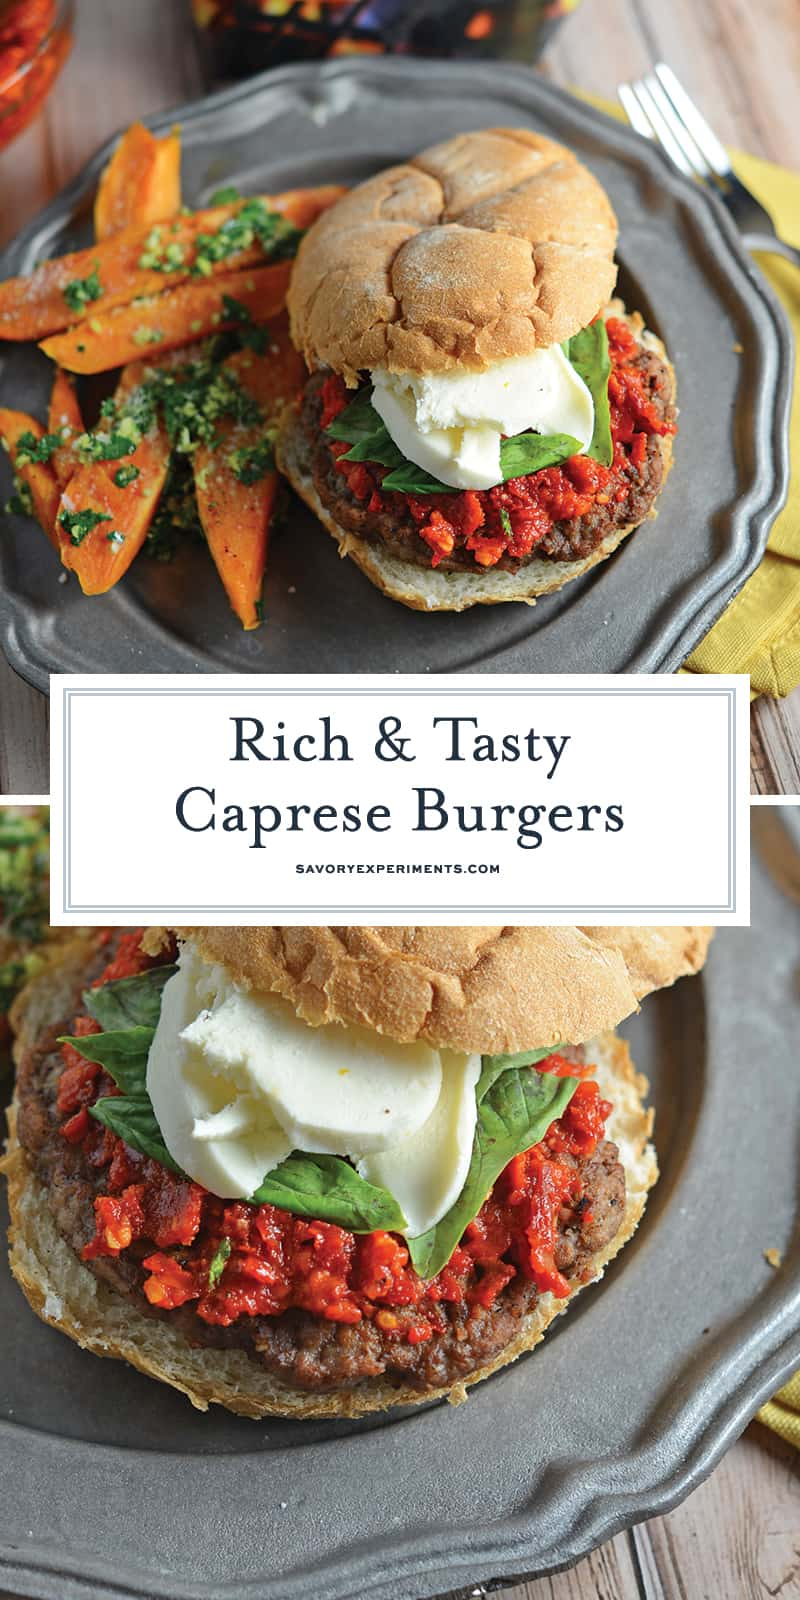 Caprese Burgers are smothered with a red pesto, fresh mozzarella and basil all on a flame-grilled burger. The best gourmet burger out there!#capreseburgers #gourmetburgers www.savoryexperiments.com